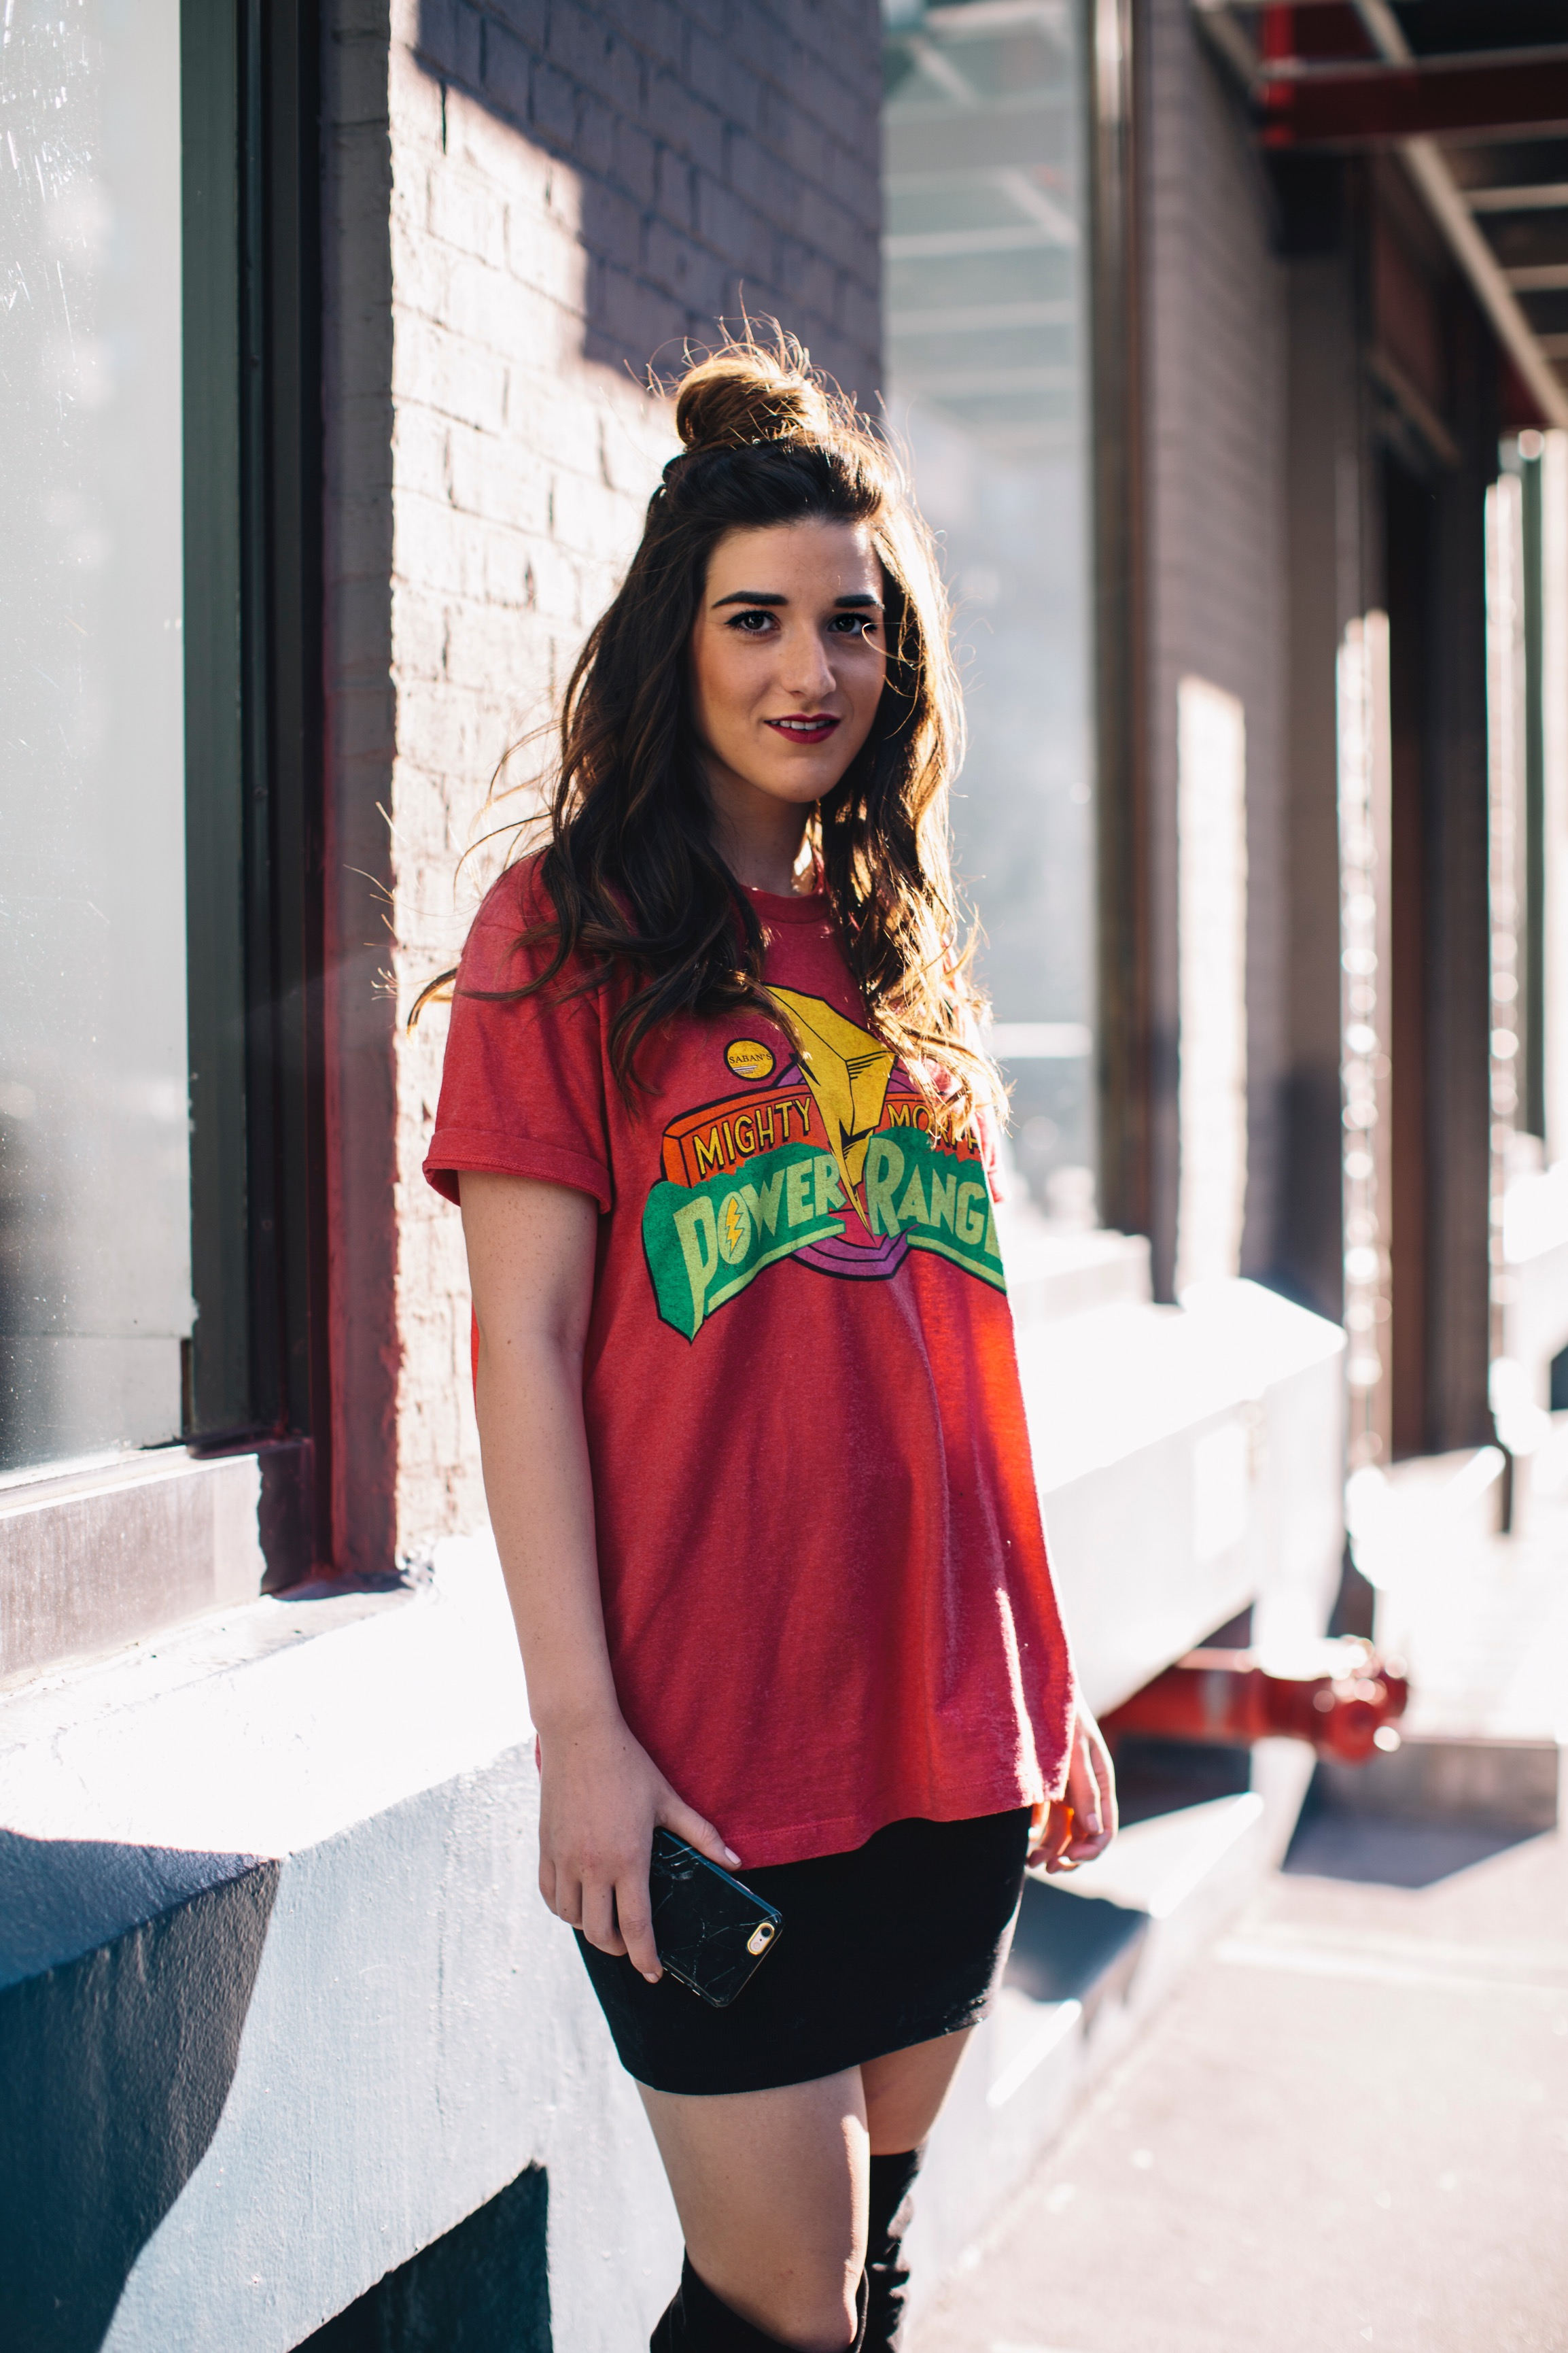 Power Rangers Tee + OTN Boots Hashtag Blogger Problems Louboutins & Love Fashion Blog Esther Santer NYC Street Style Blogger Outfit OOTD Trendy Red Top Black Mini Skirt Girl Women What To Wear Shopping Phone Hair Topknot Bun Fun Graphic T-Shirt Edgy.jpg